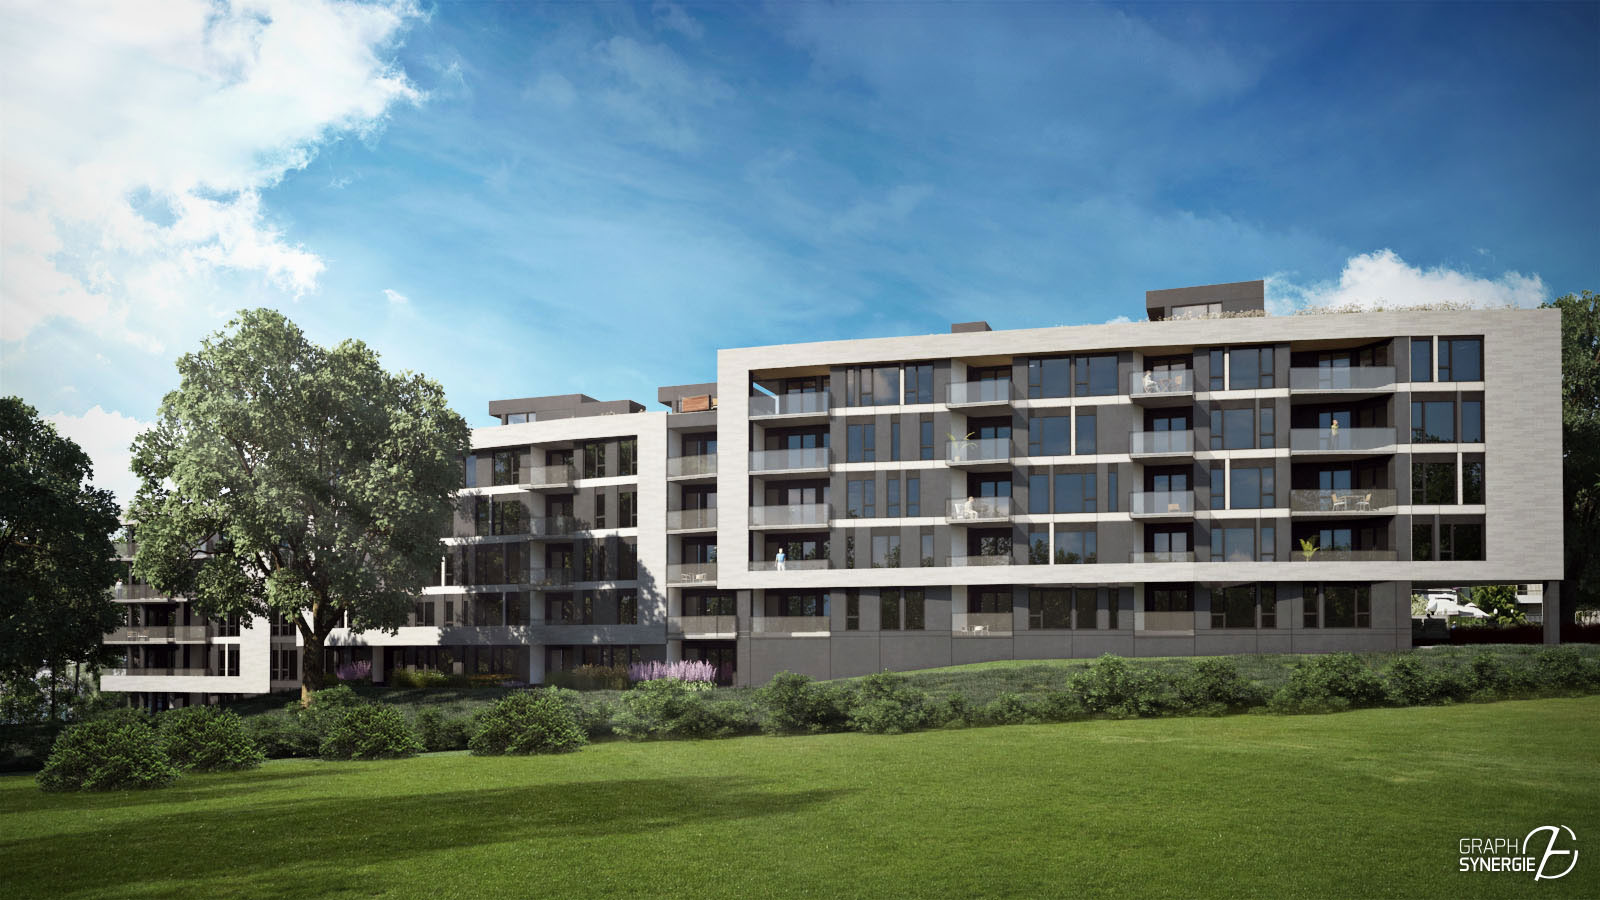 Les condominiums Woodfield Sillery Image 14